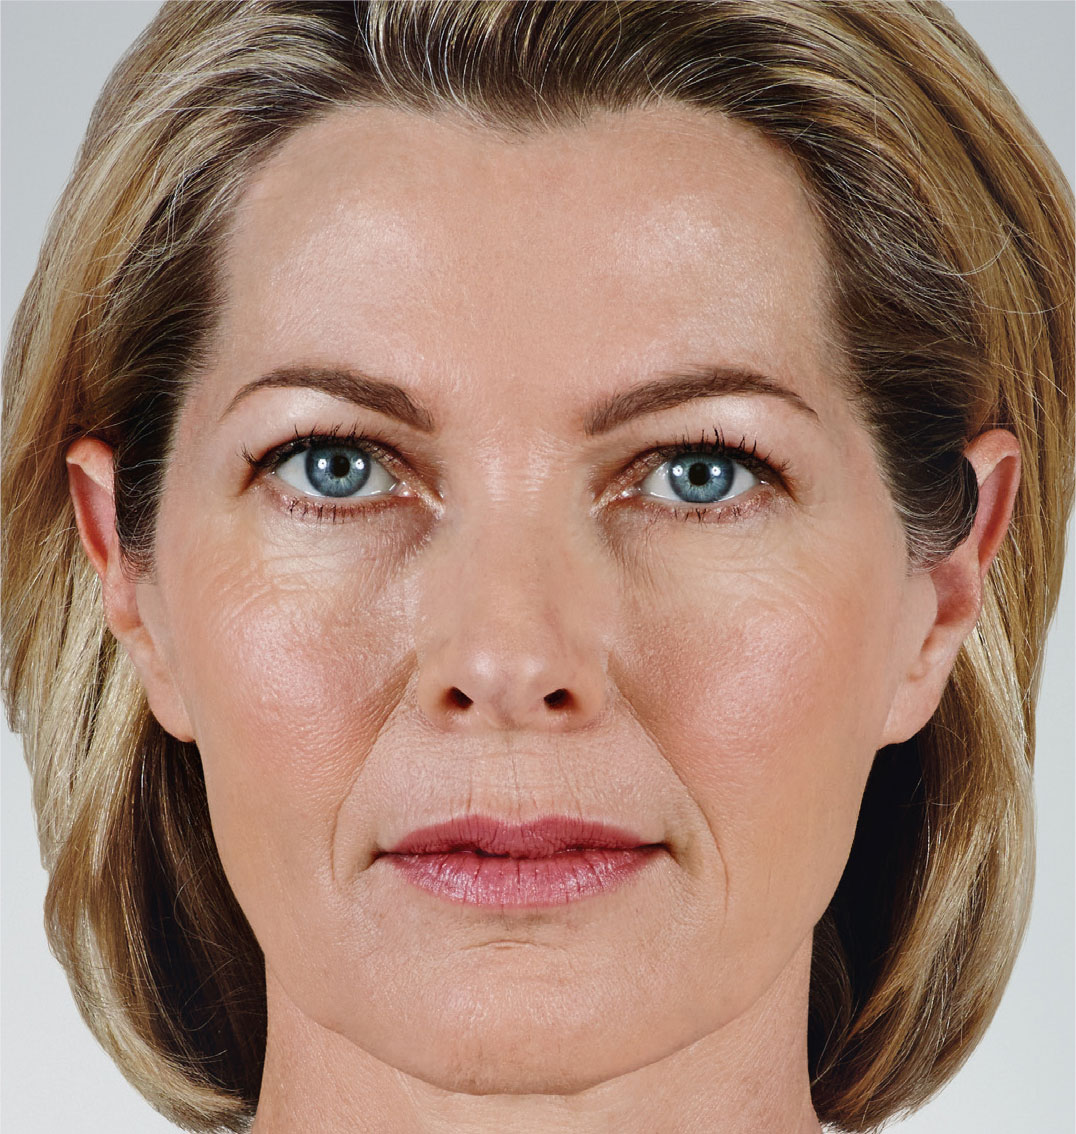 woman's face with wrinkles